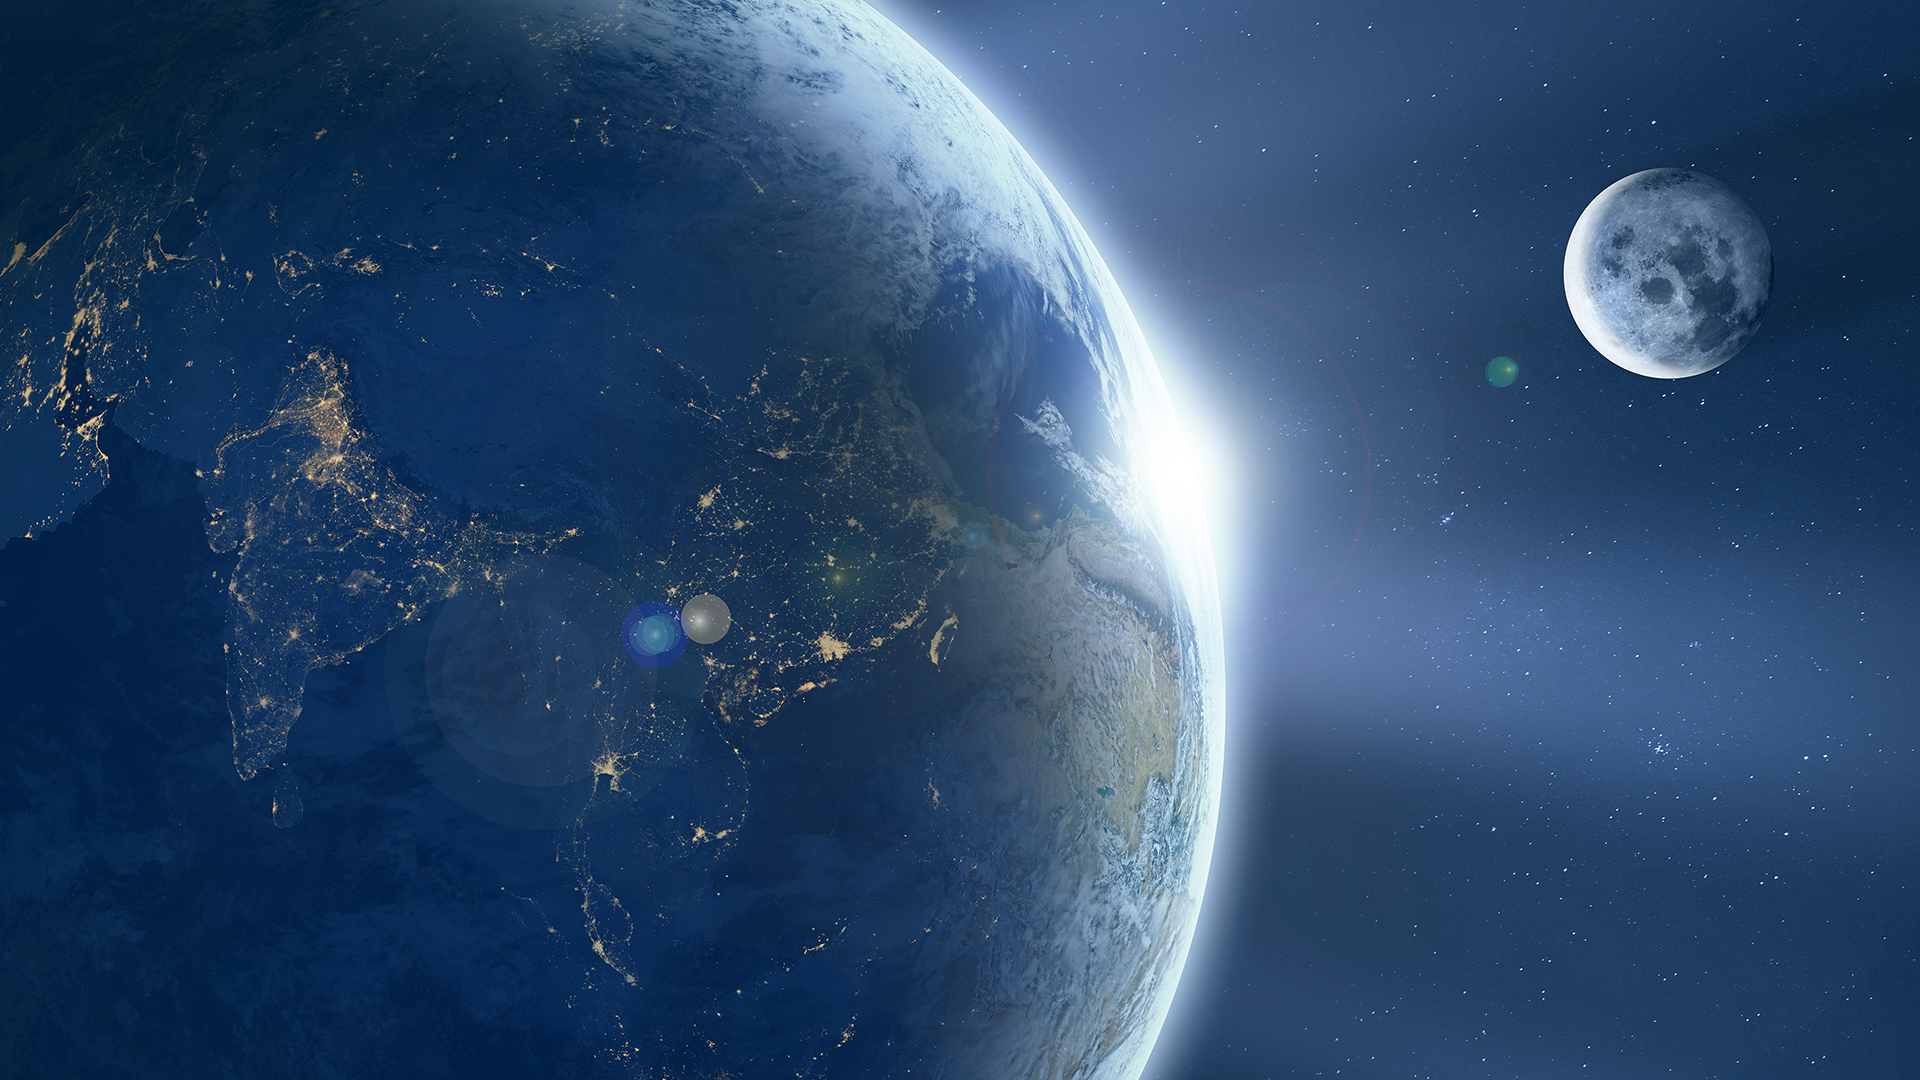 Earth From Space 1920 X 1080 UHD Wallpaper